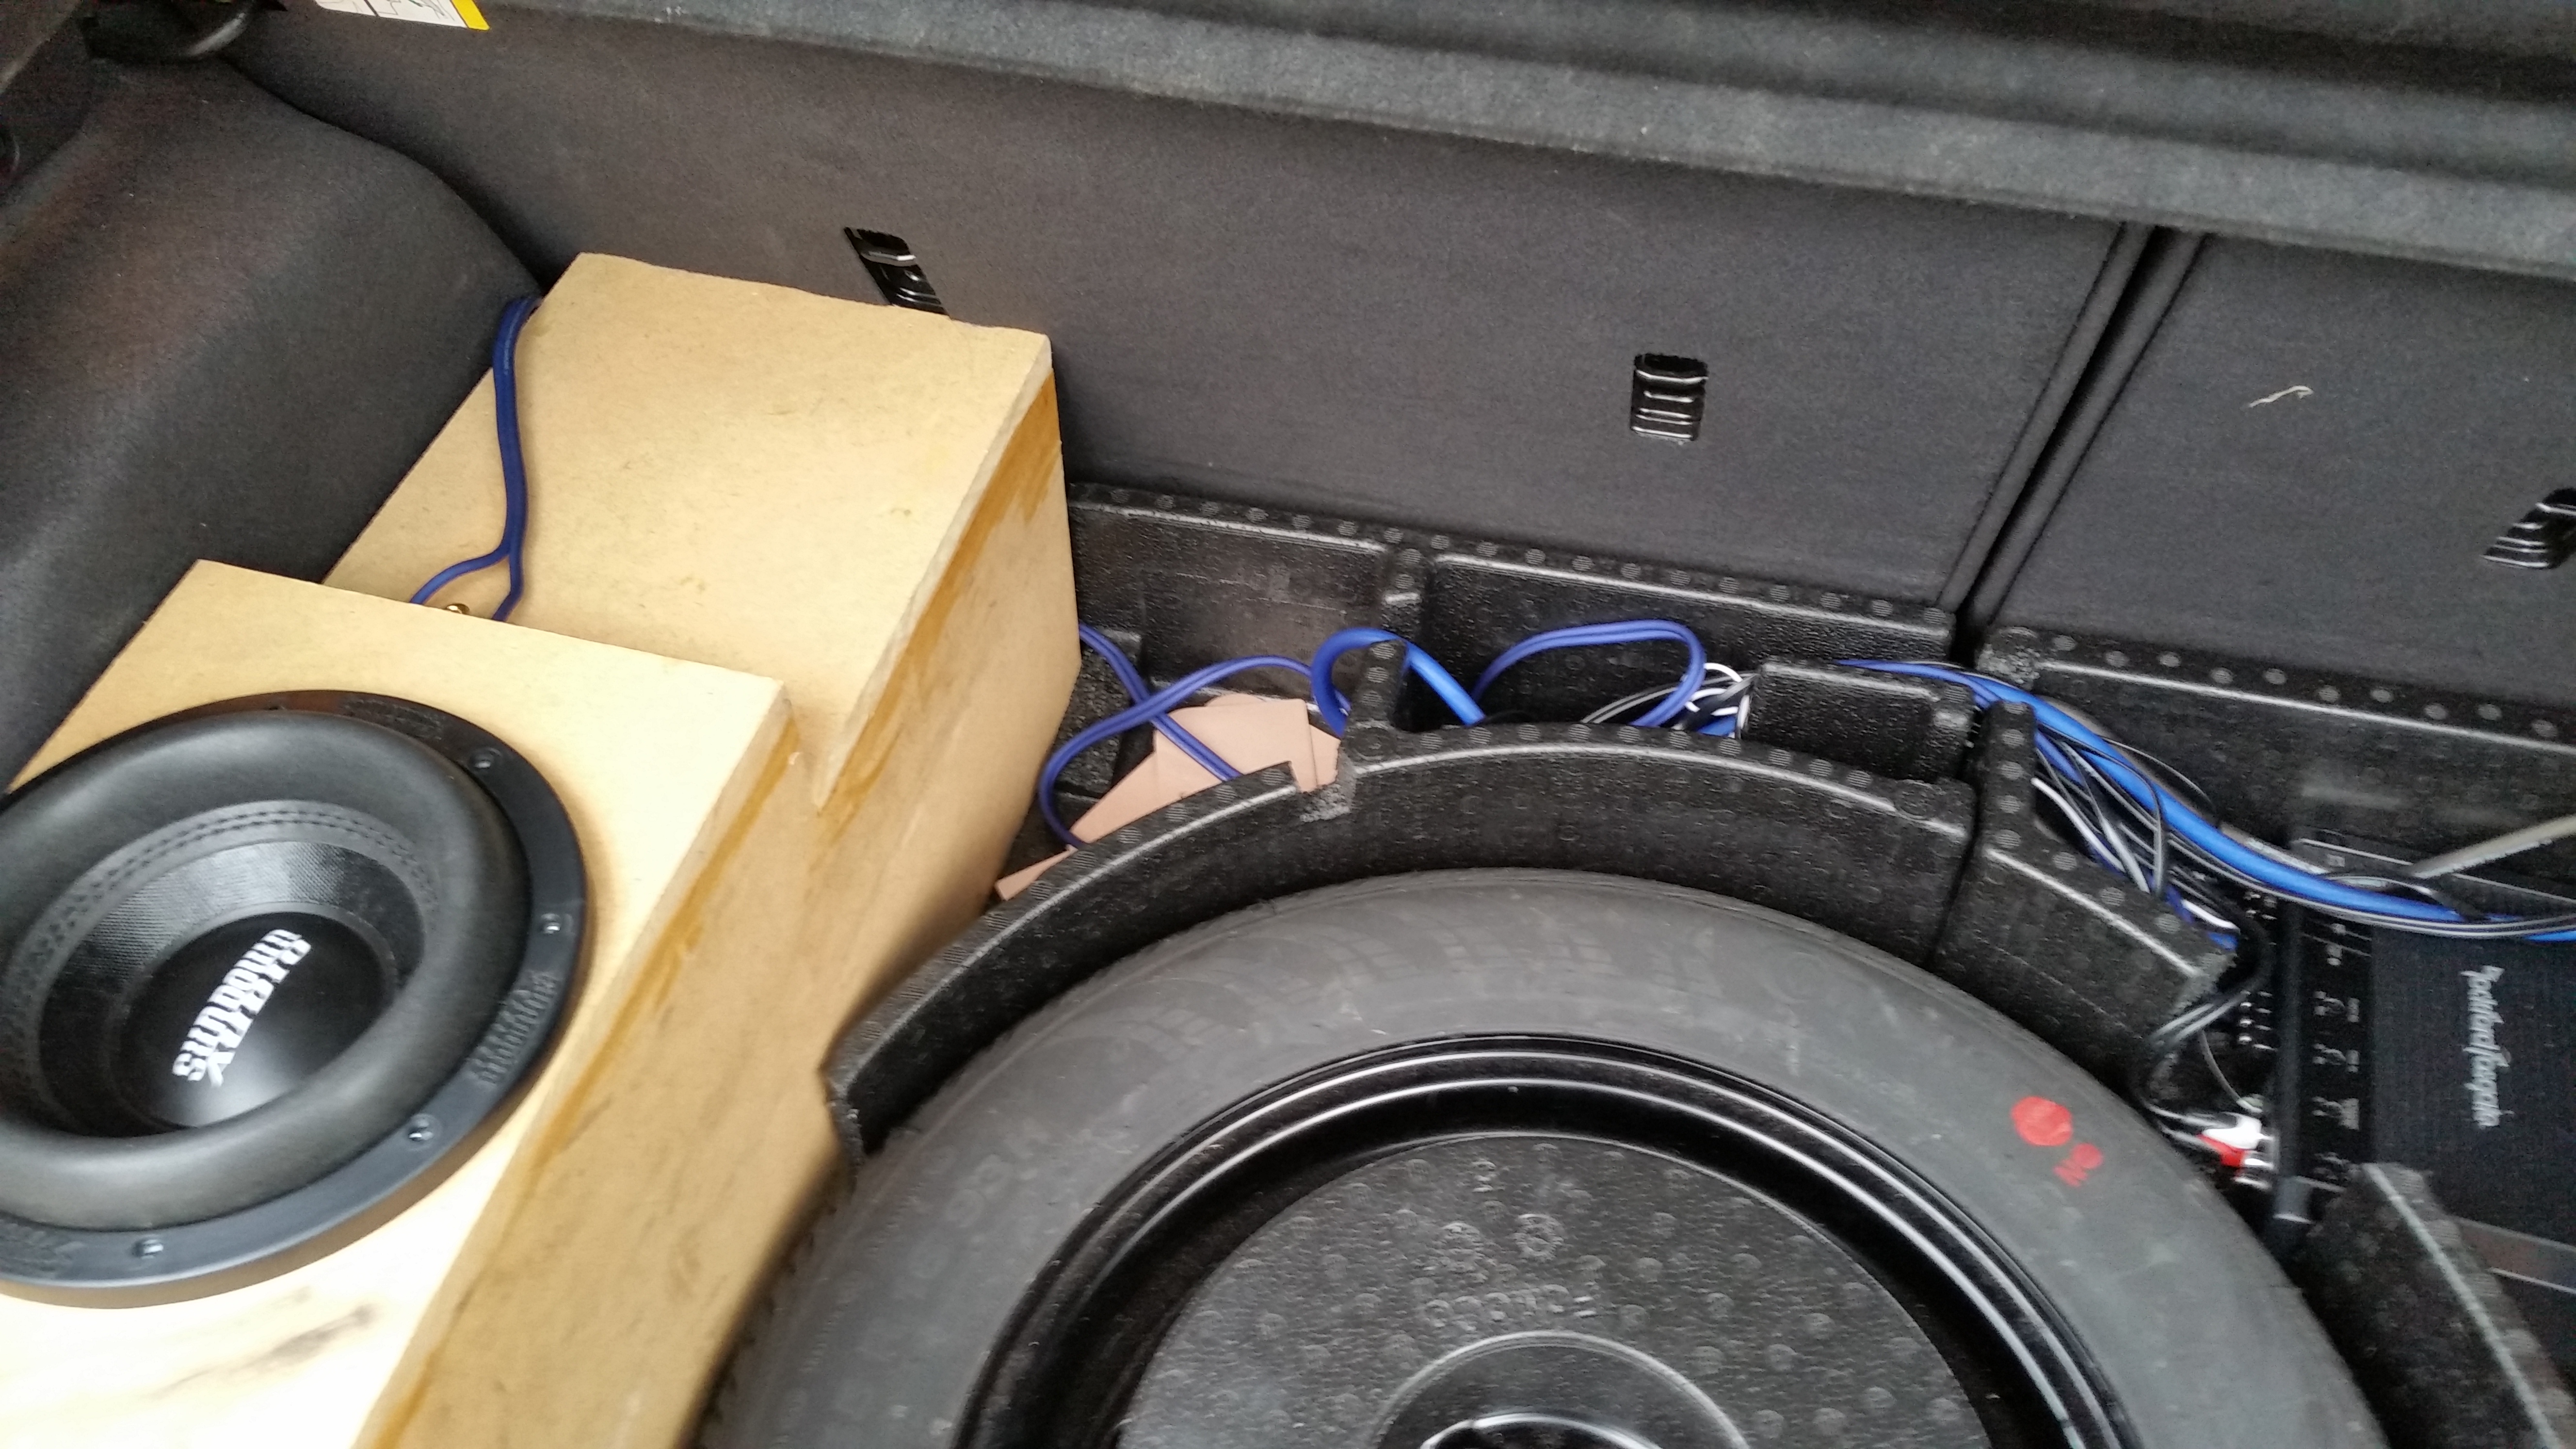 St1 Sub Install Wiring Diagram For Hooking Up Subs Name 20161221 160158 Views 896 Size 372 Mb